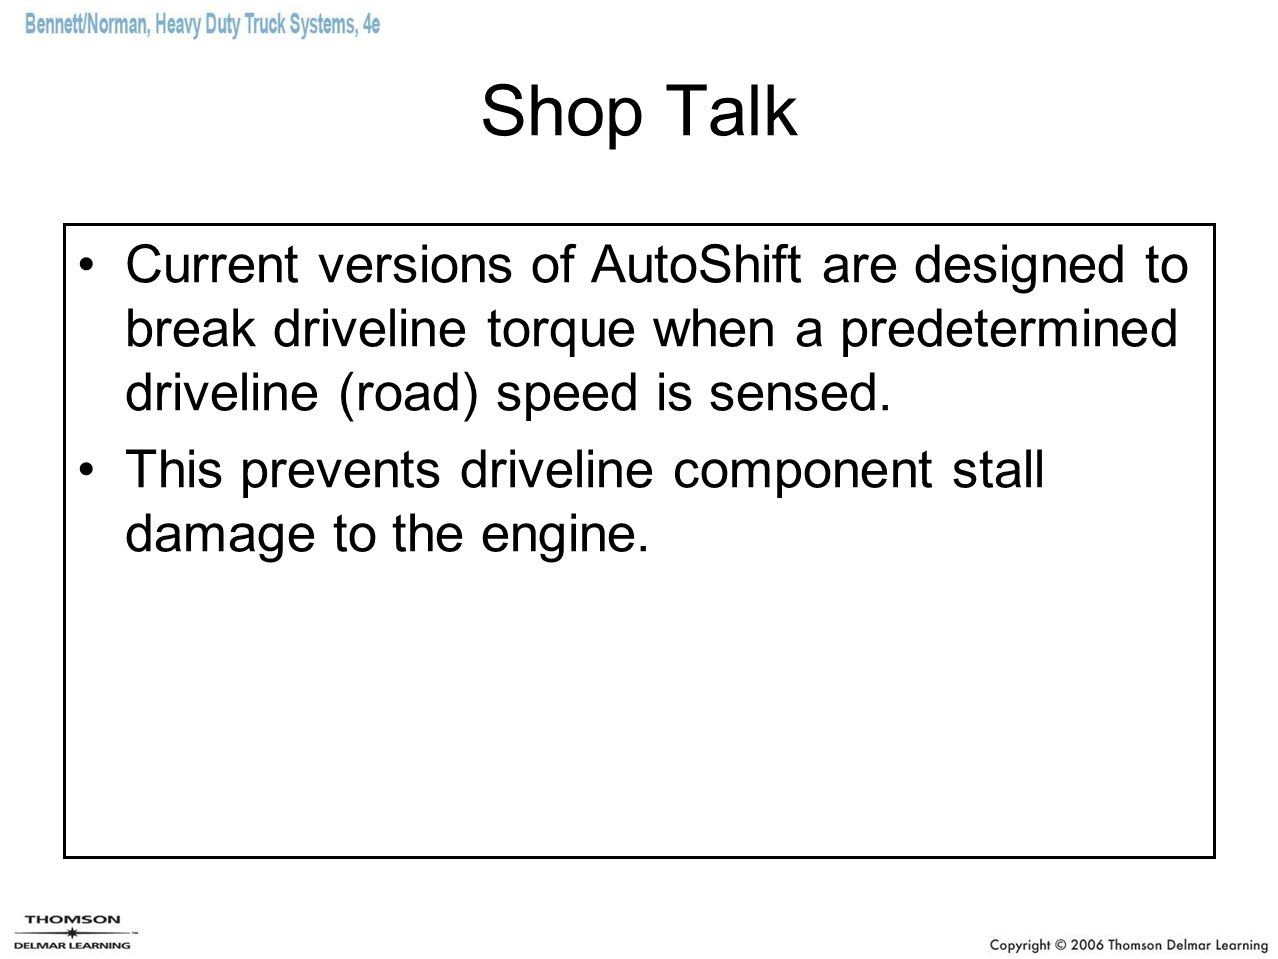 Shop Talk Current versions of AutoShift are designed to break driveline torque when a predetermined driveline (road) speed is sensed.